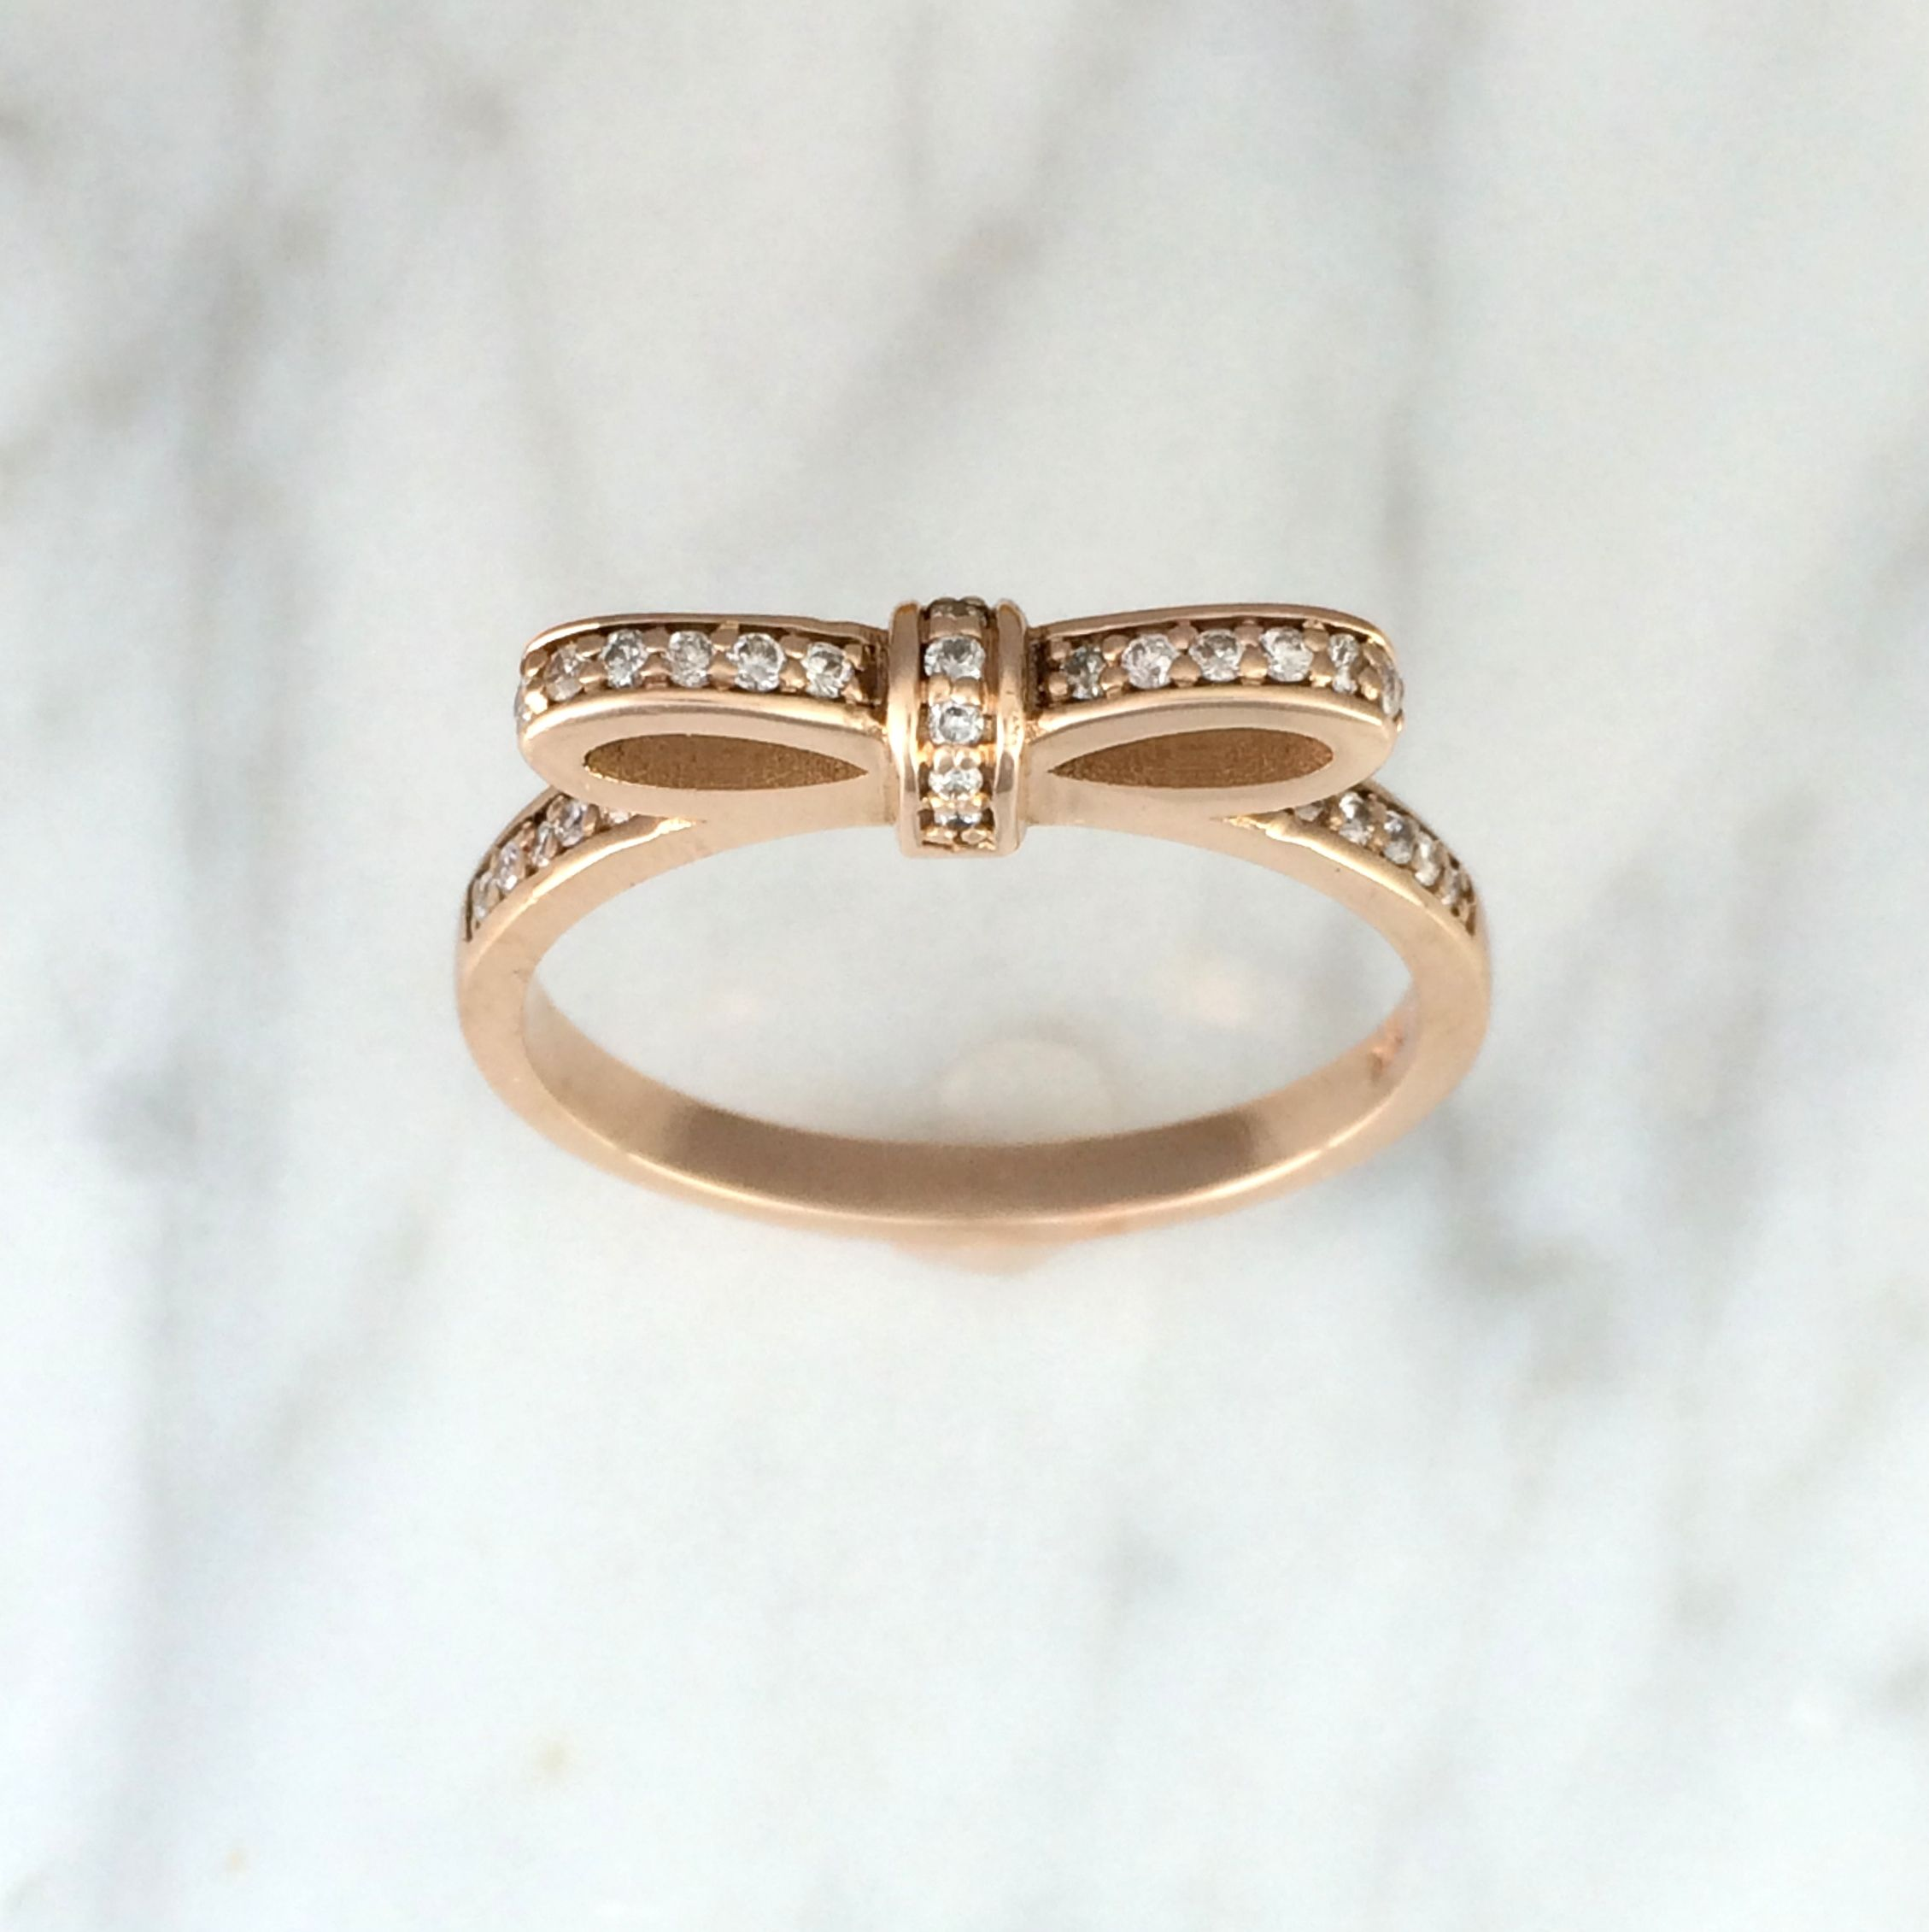 bands ring eternity diamond wedding band pav rose pave petite side in gold